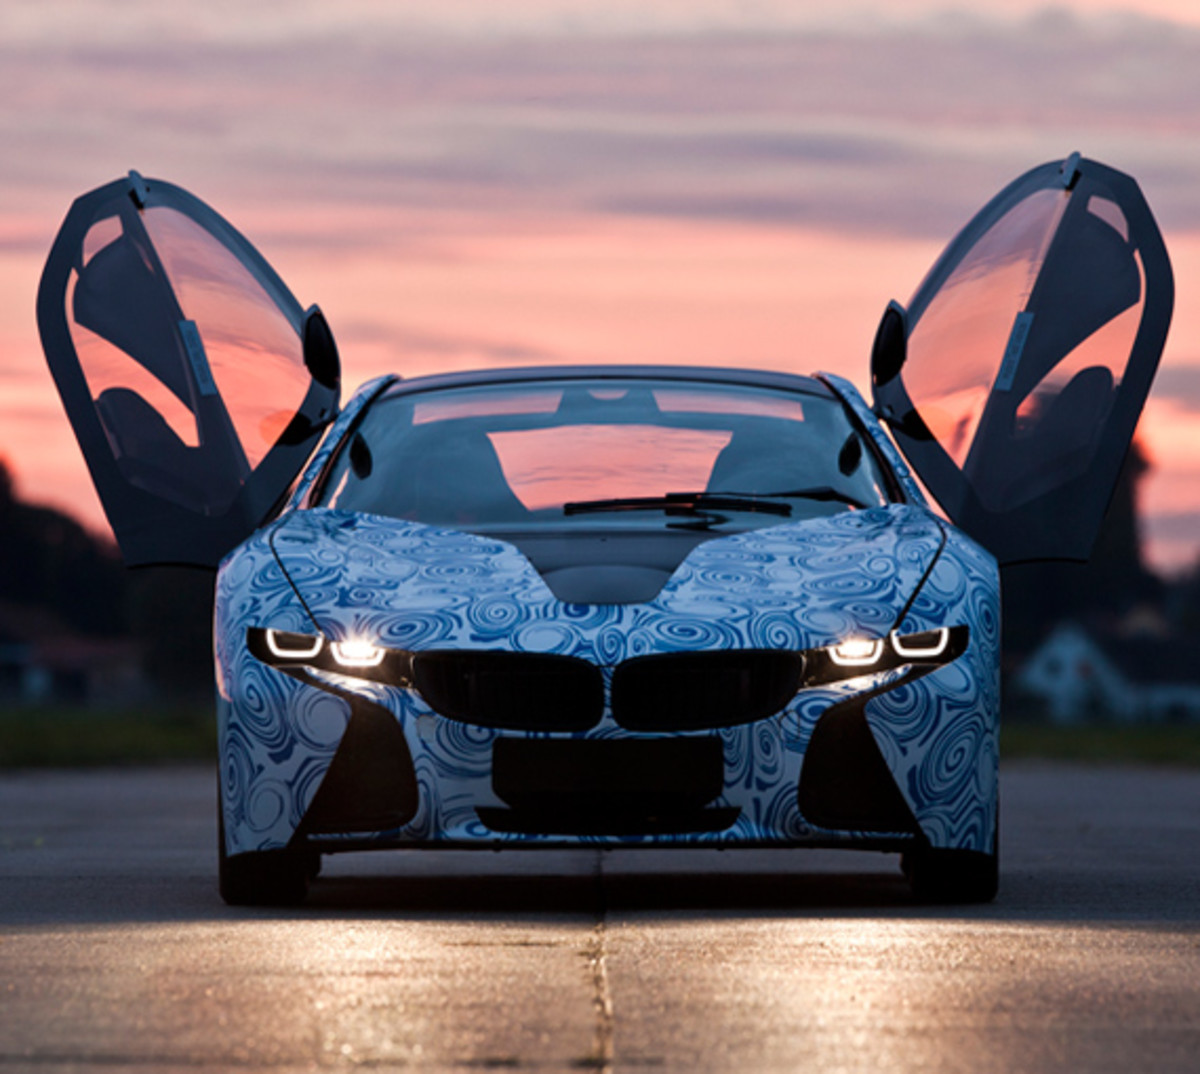 BMW-Vision-EfficientDynamics-test-track-15